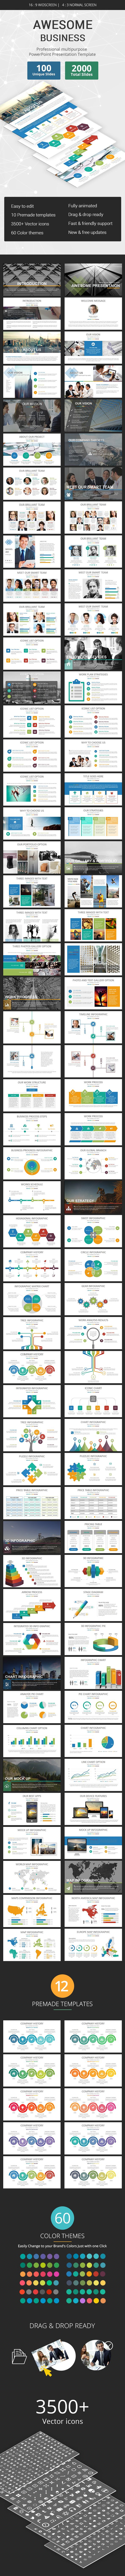 Awesome Business — Powerpoint PPTX #portfolio #marketing • Download ➝ https://graphicriver.net/item/awesome-business-powerpoint-presentation-template/19424696?ref=pxcr